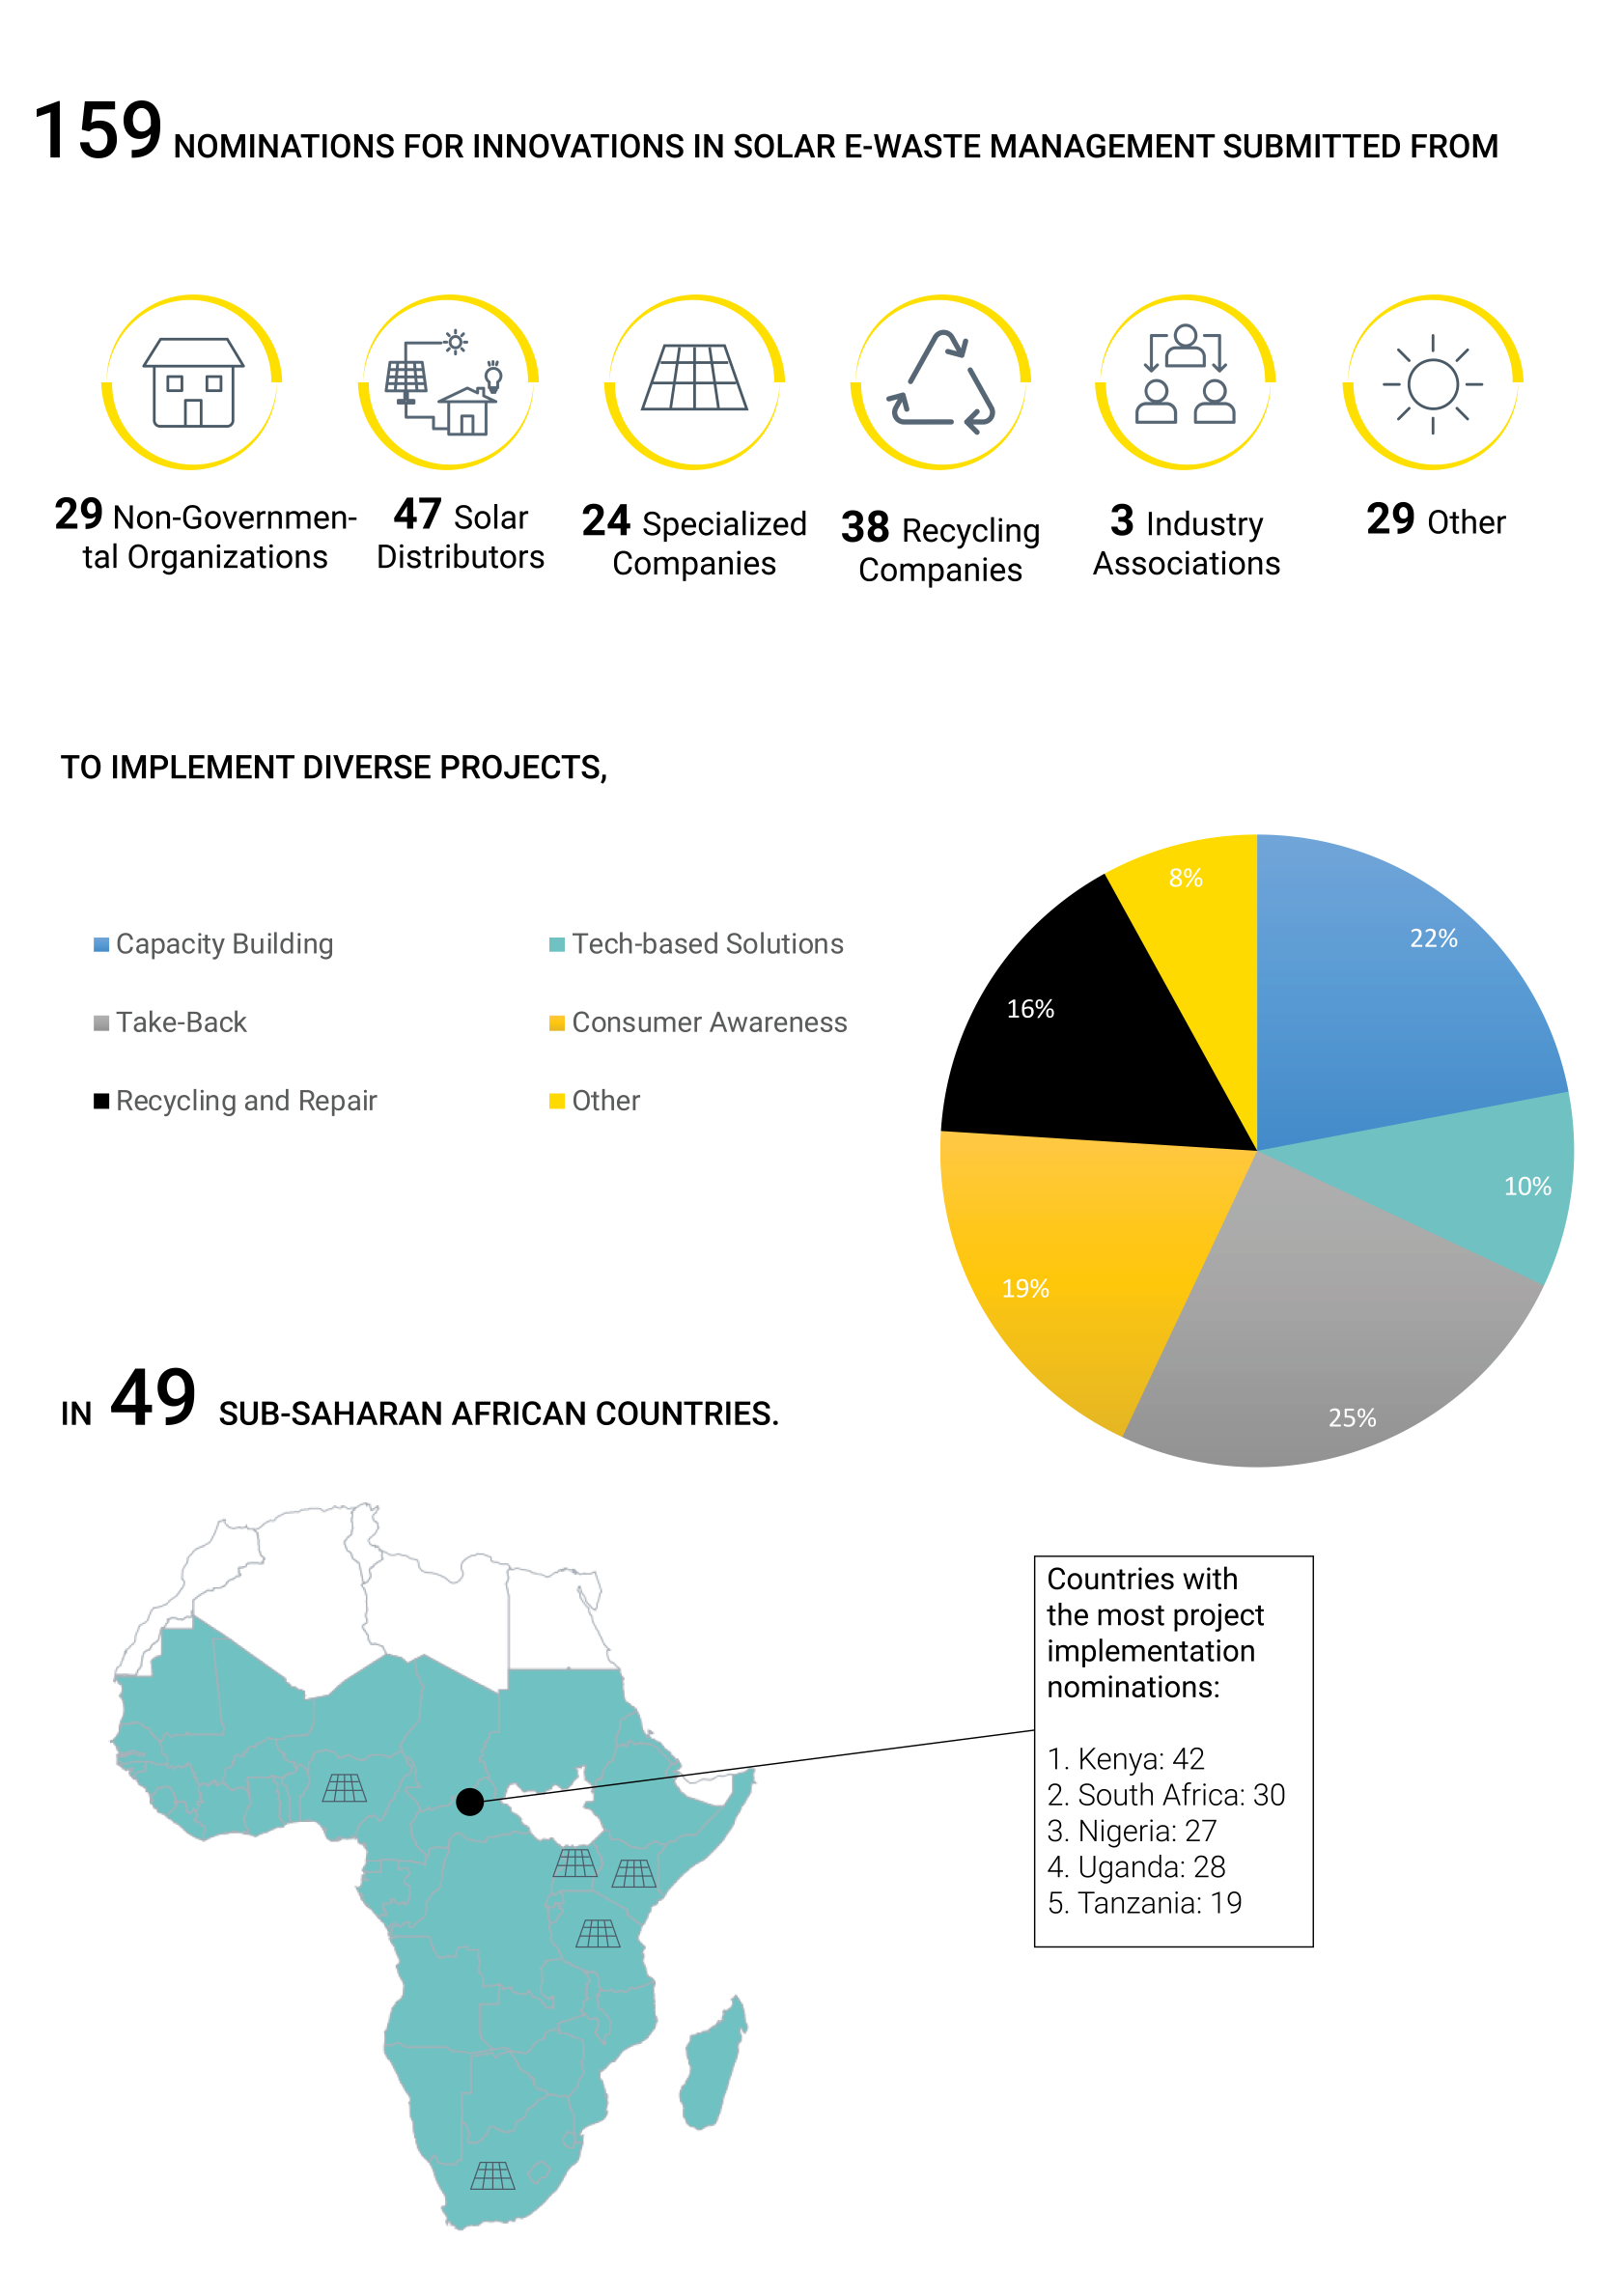 E-Waste-Nominations-Infographic.png#asset:7660